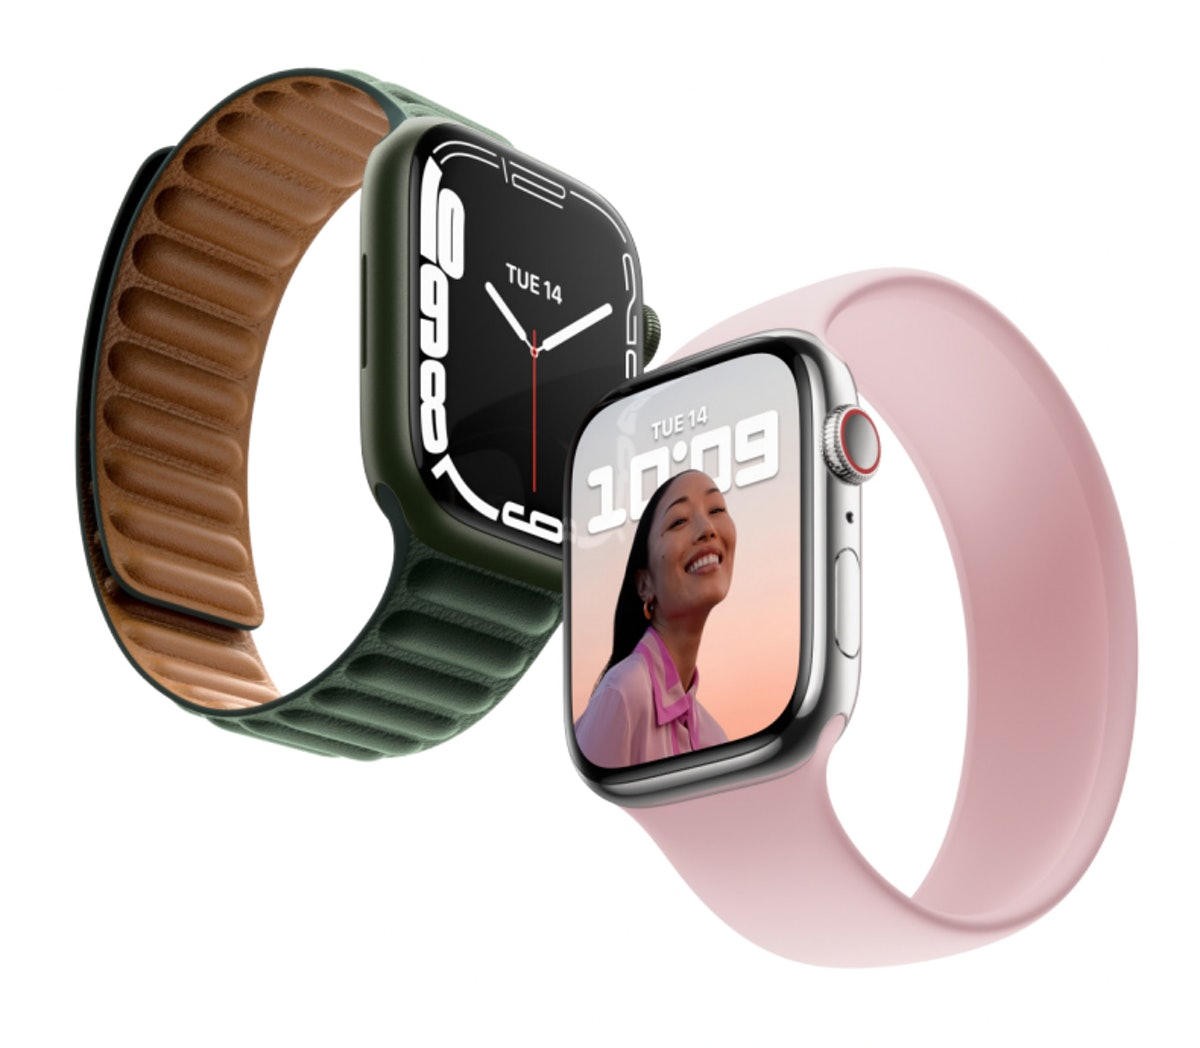 Two new Apple Watch series 7 in green and silver. Is the new apple watch worth it?